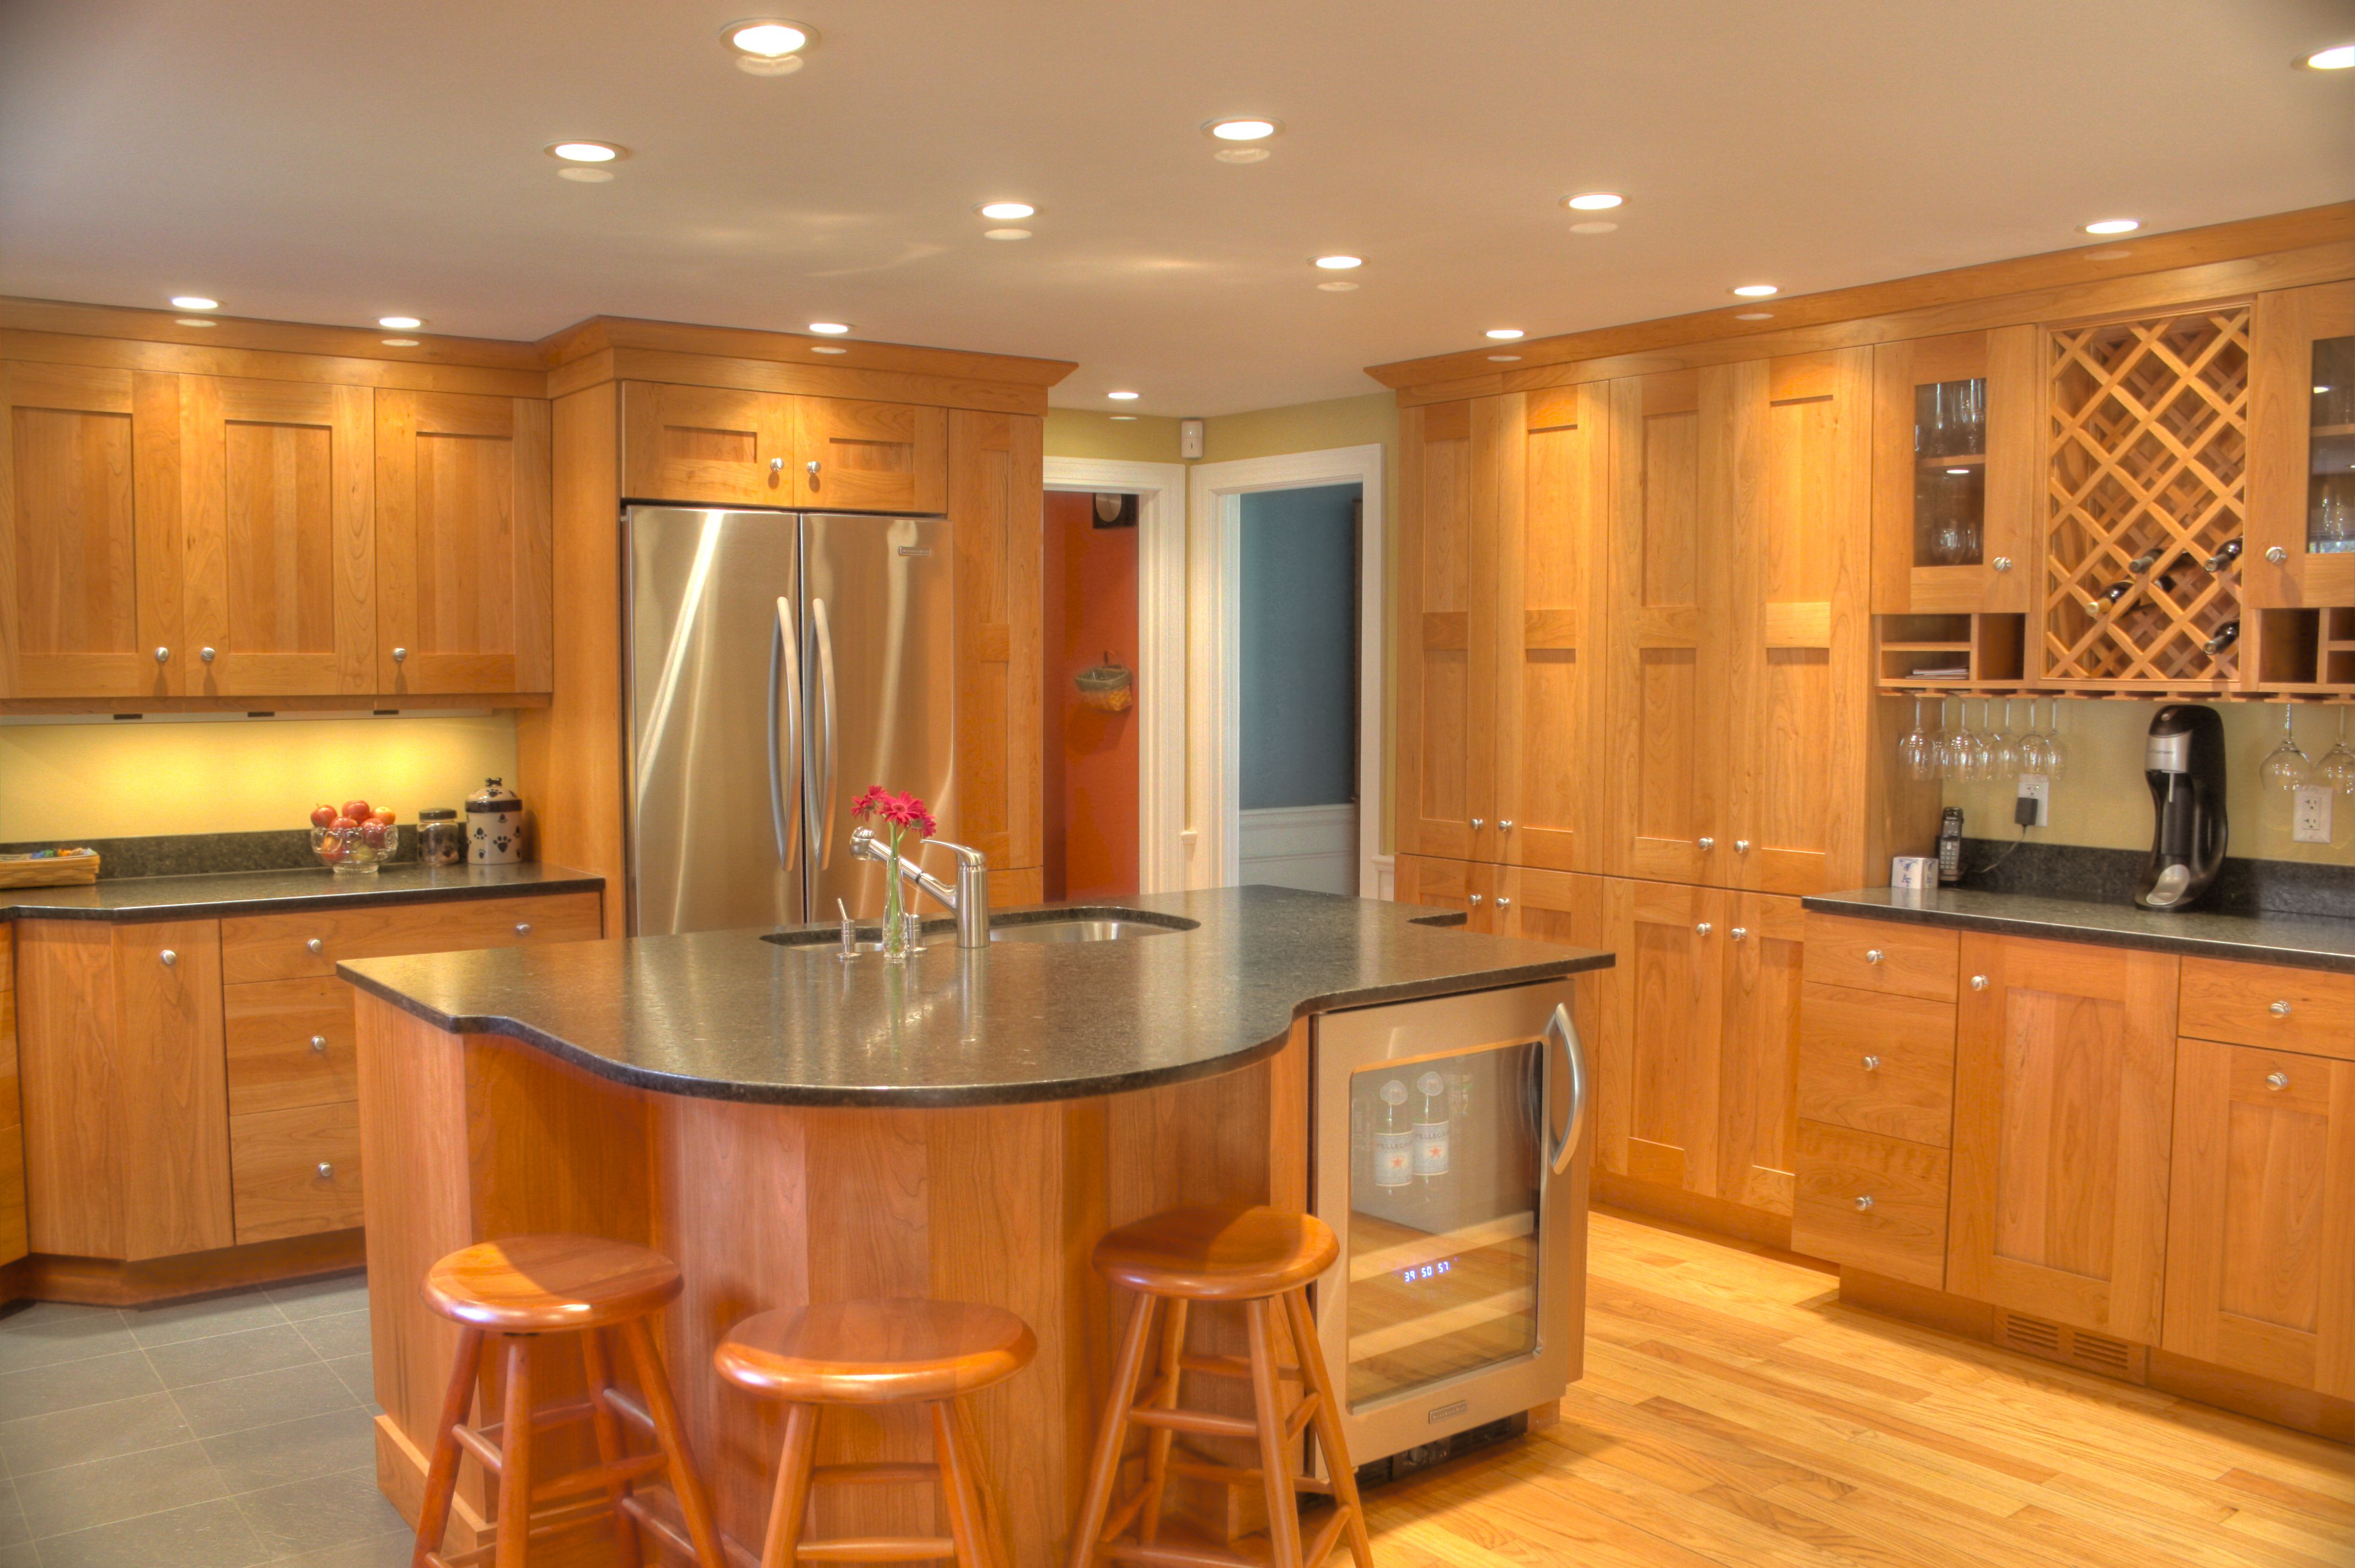 Cherry Wood Kitchens stainless steel appliances, wine